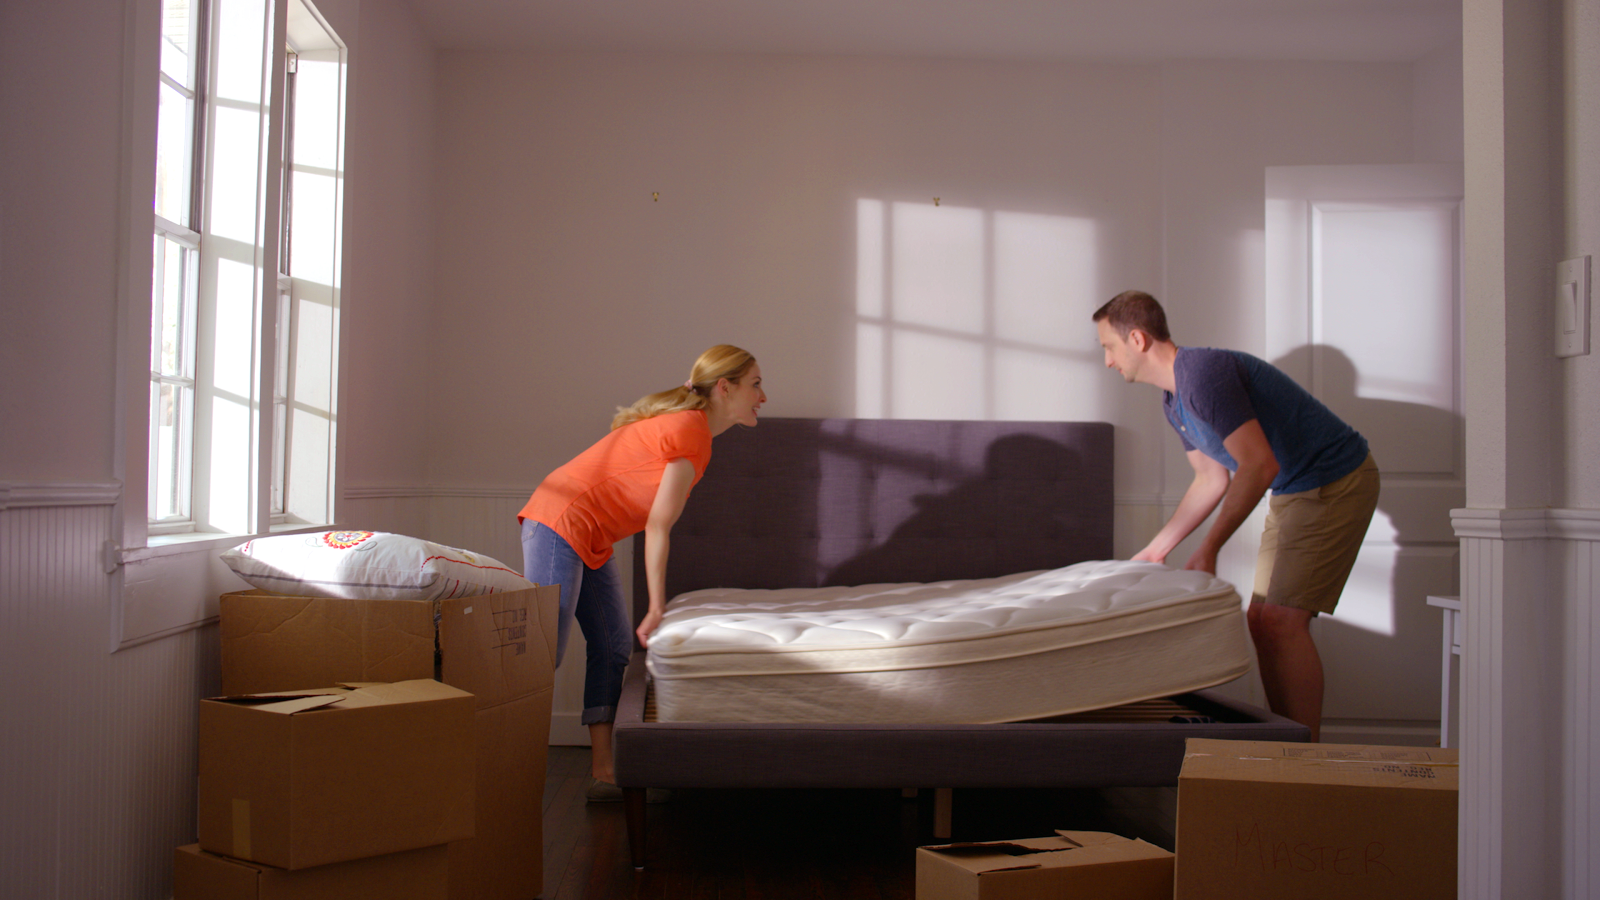 couple moving a mattress from the bedframe